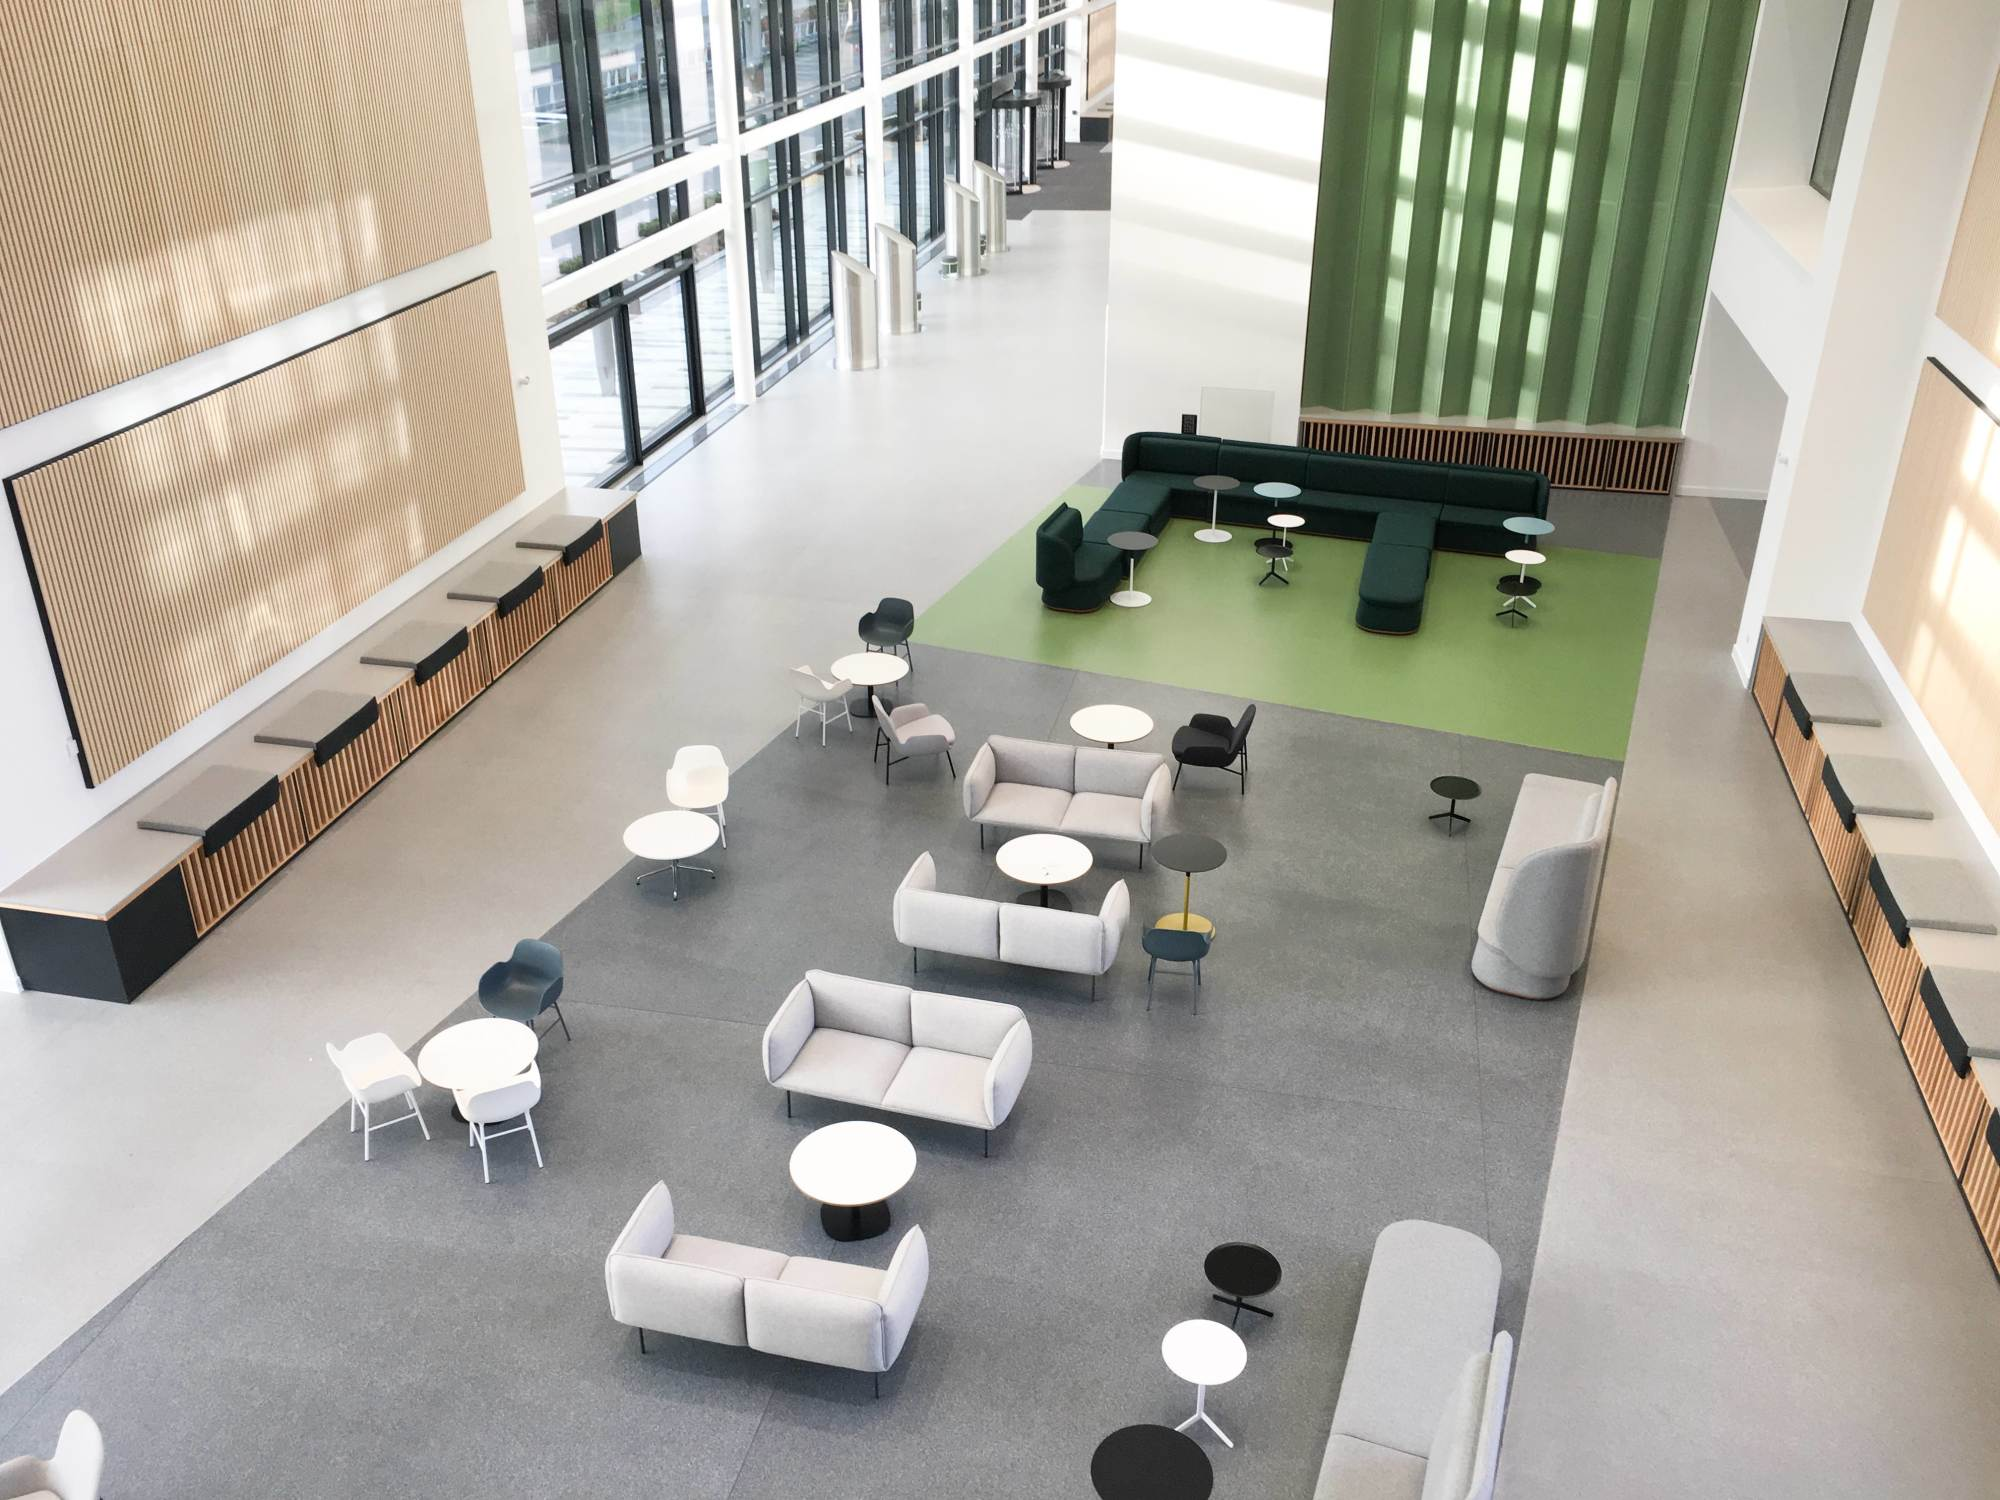 A Flowcrete resin floor at the University of the West of Scotland's new £110 million Lanarkshire campus.